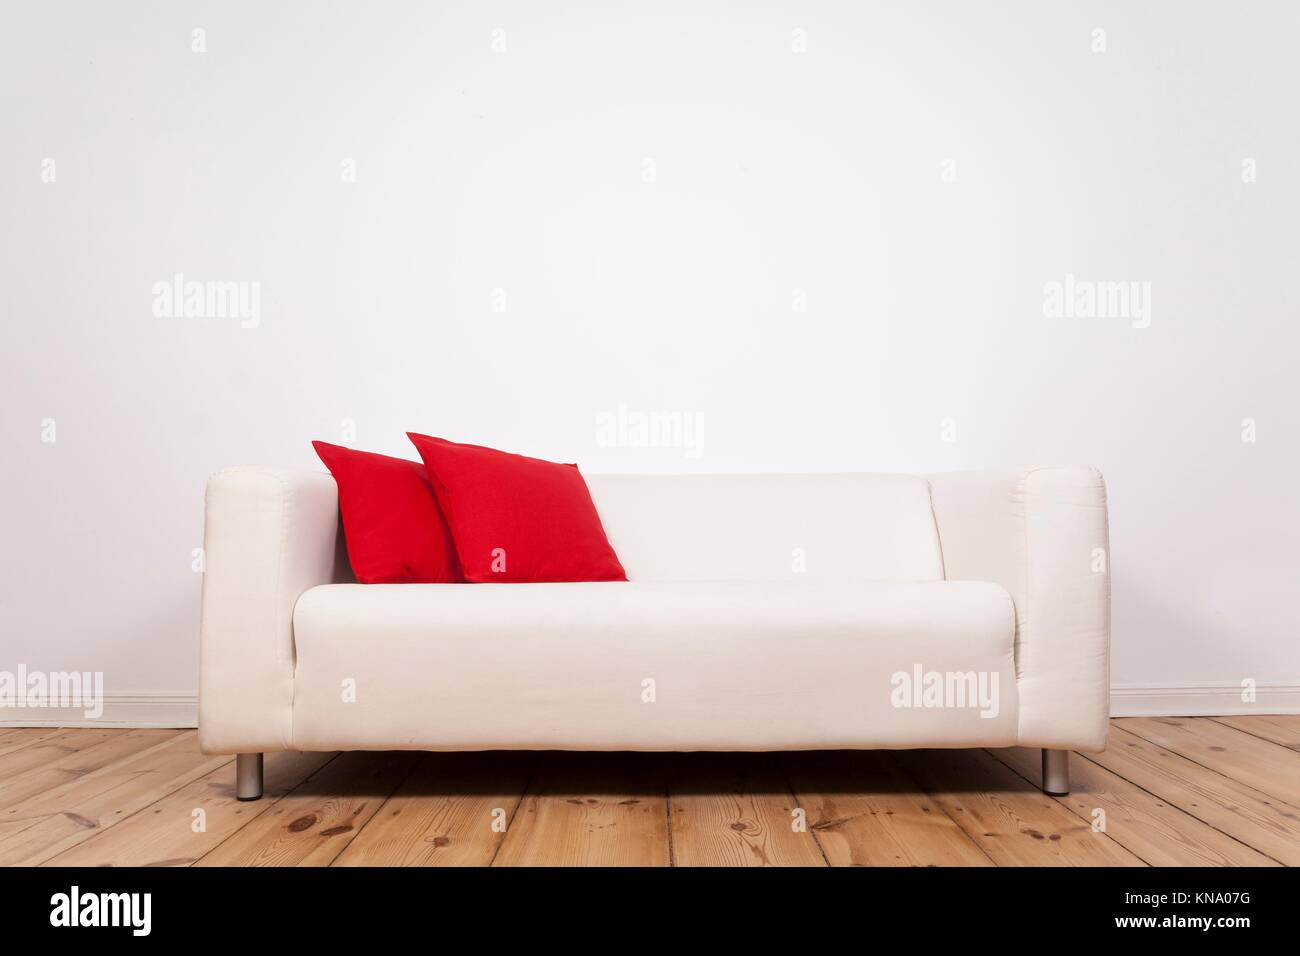 Sofa and space on wall. - Stock Image